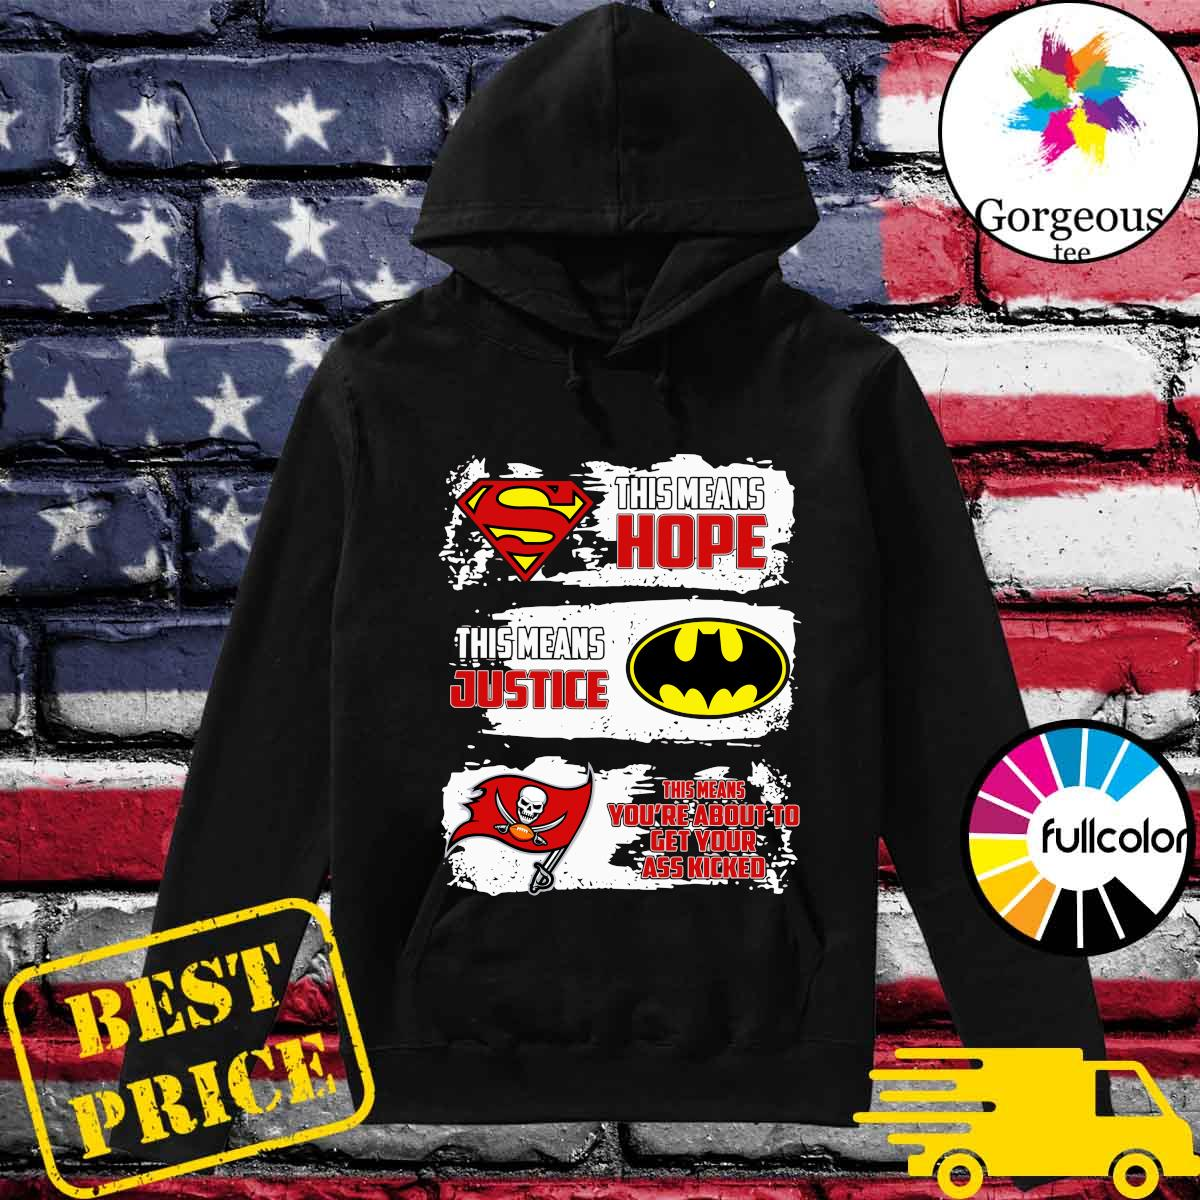 Superman This Means Hope, Batman This Means Justice, Tampa Bay Buccaneers This Means You_re About To Get Your Ass Kicked Shirt Hoodie